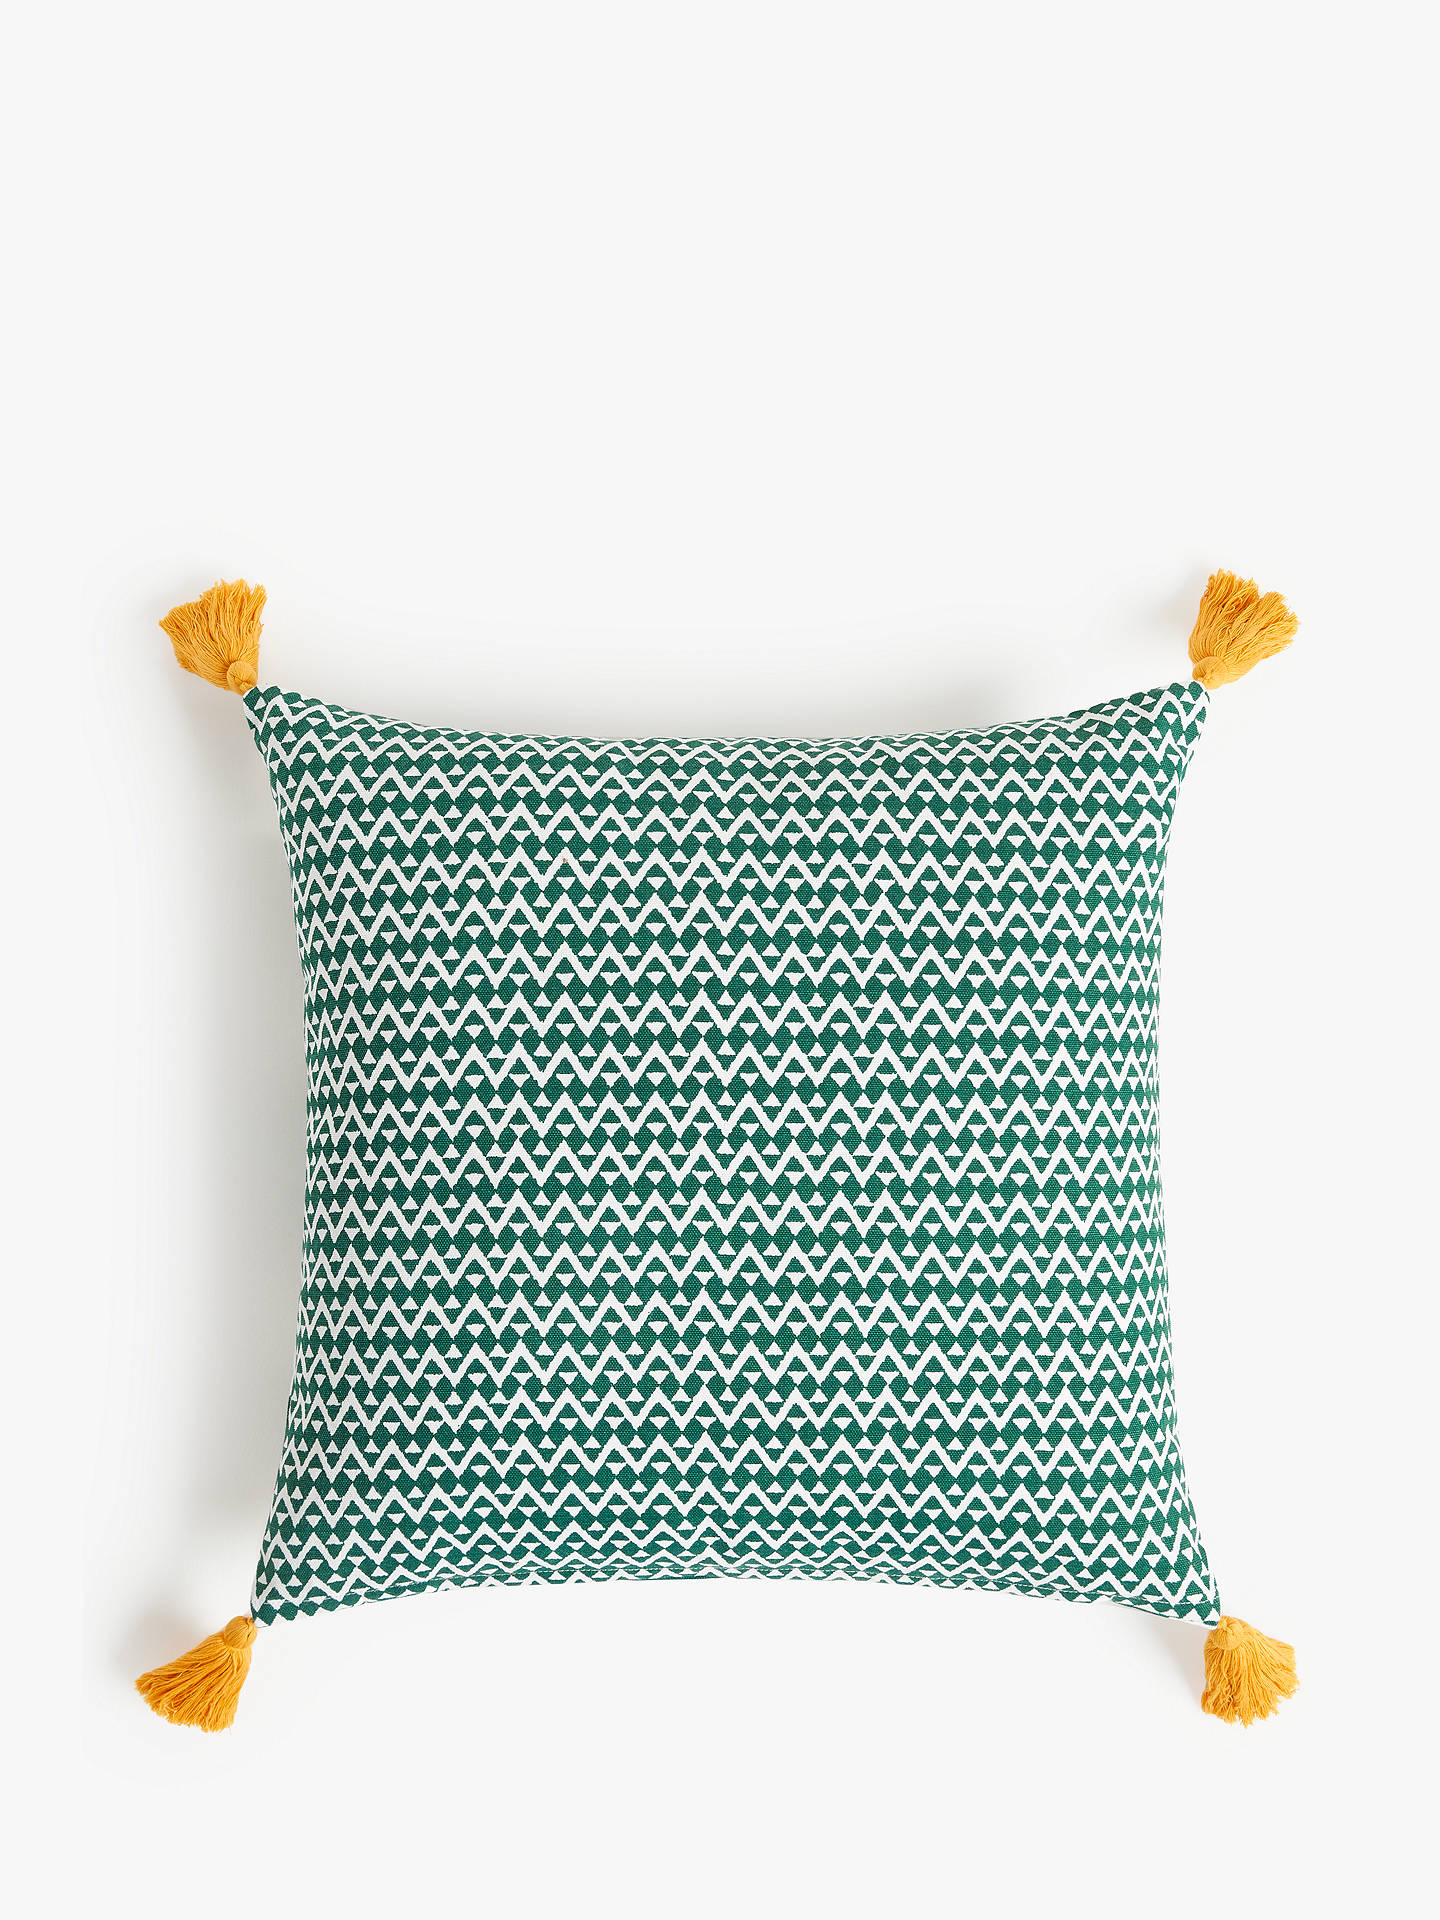 Buy John Lewis & Partners Sonoran Showerproof Outdoor Cushion, 43 x 43cm Online at johnlewis.com